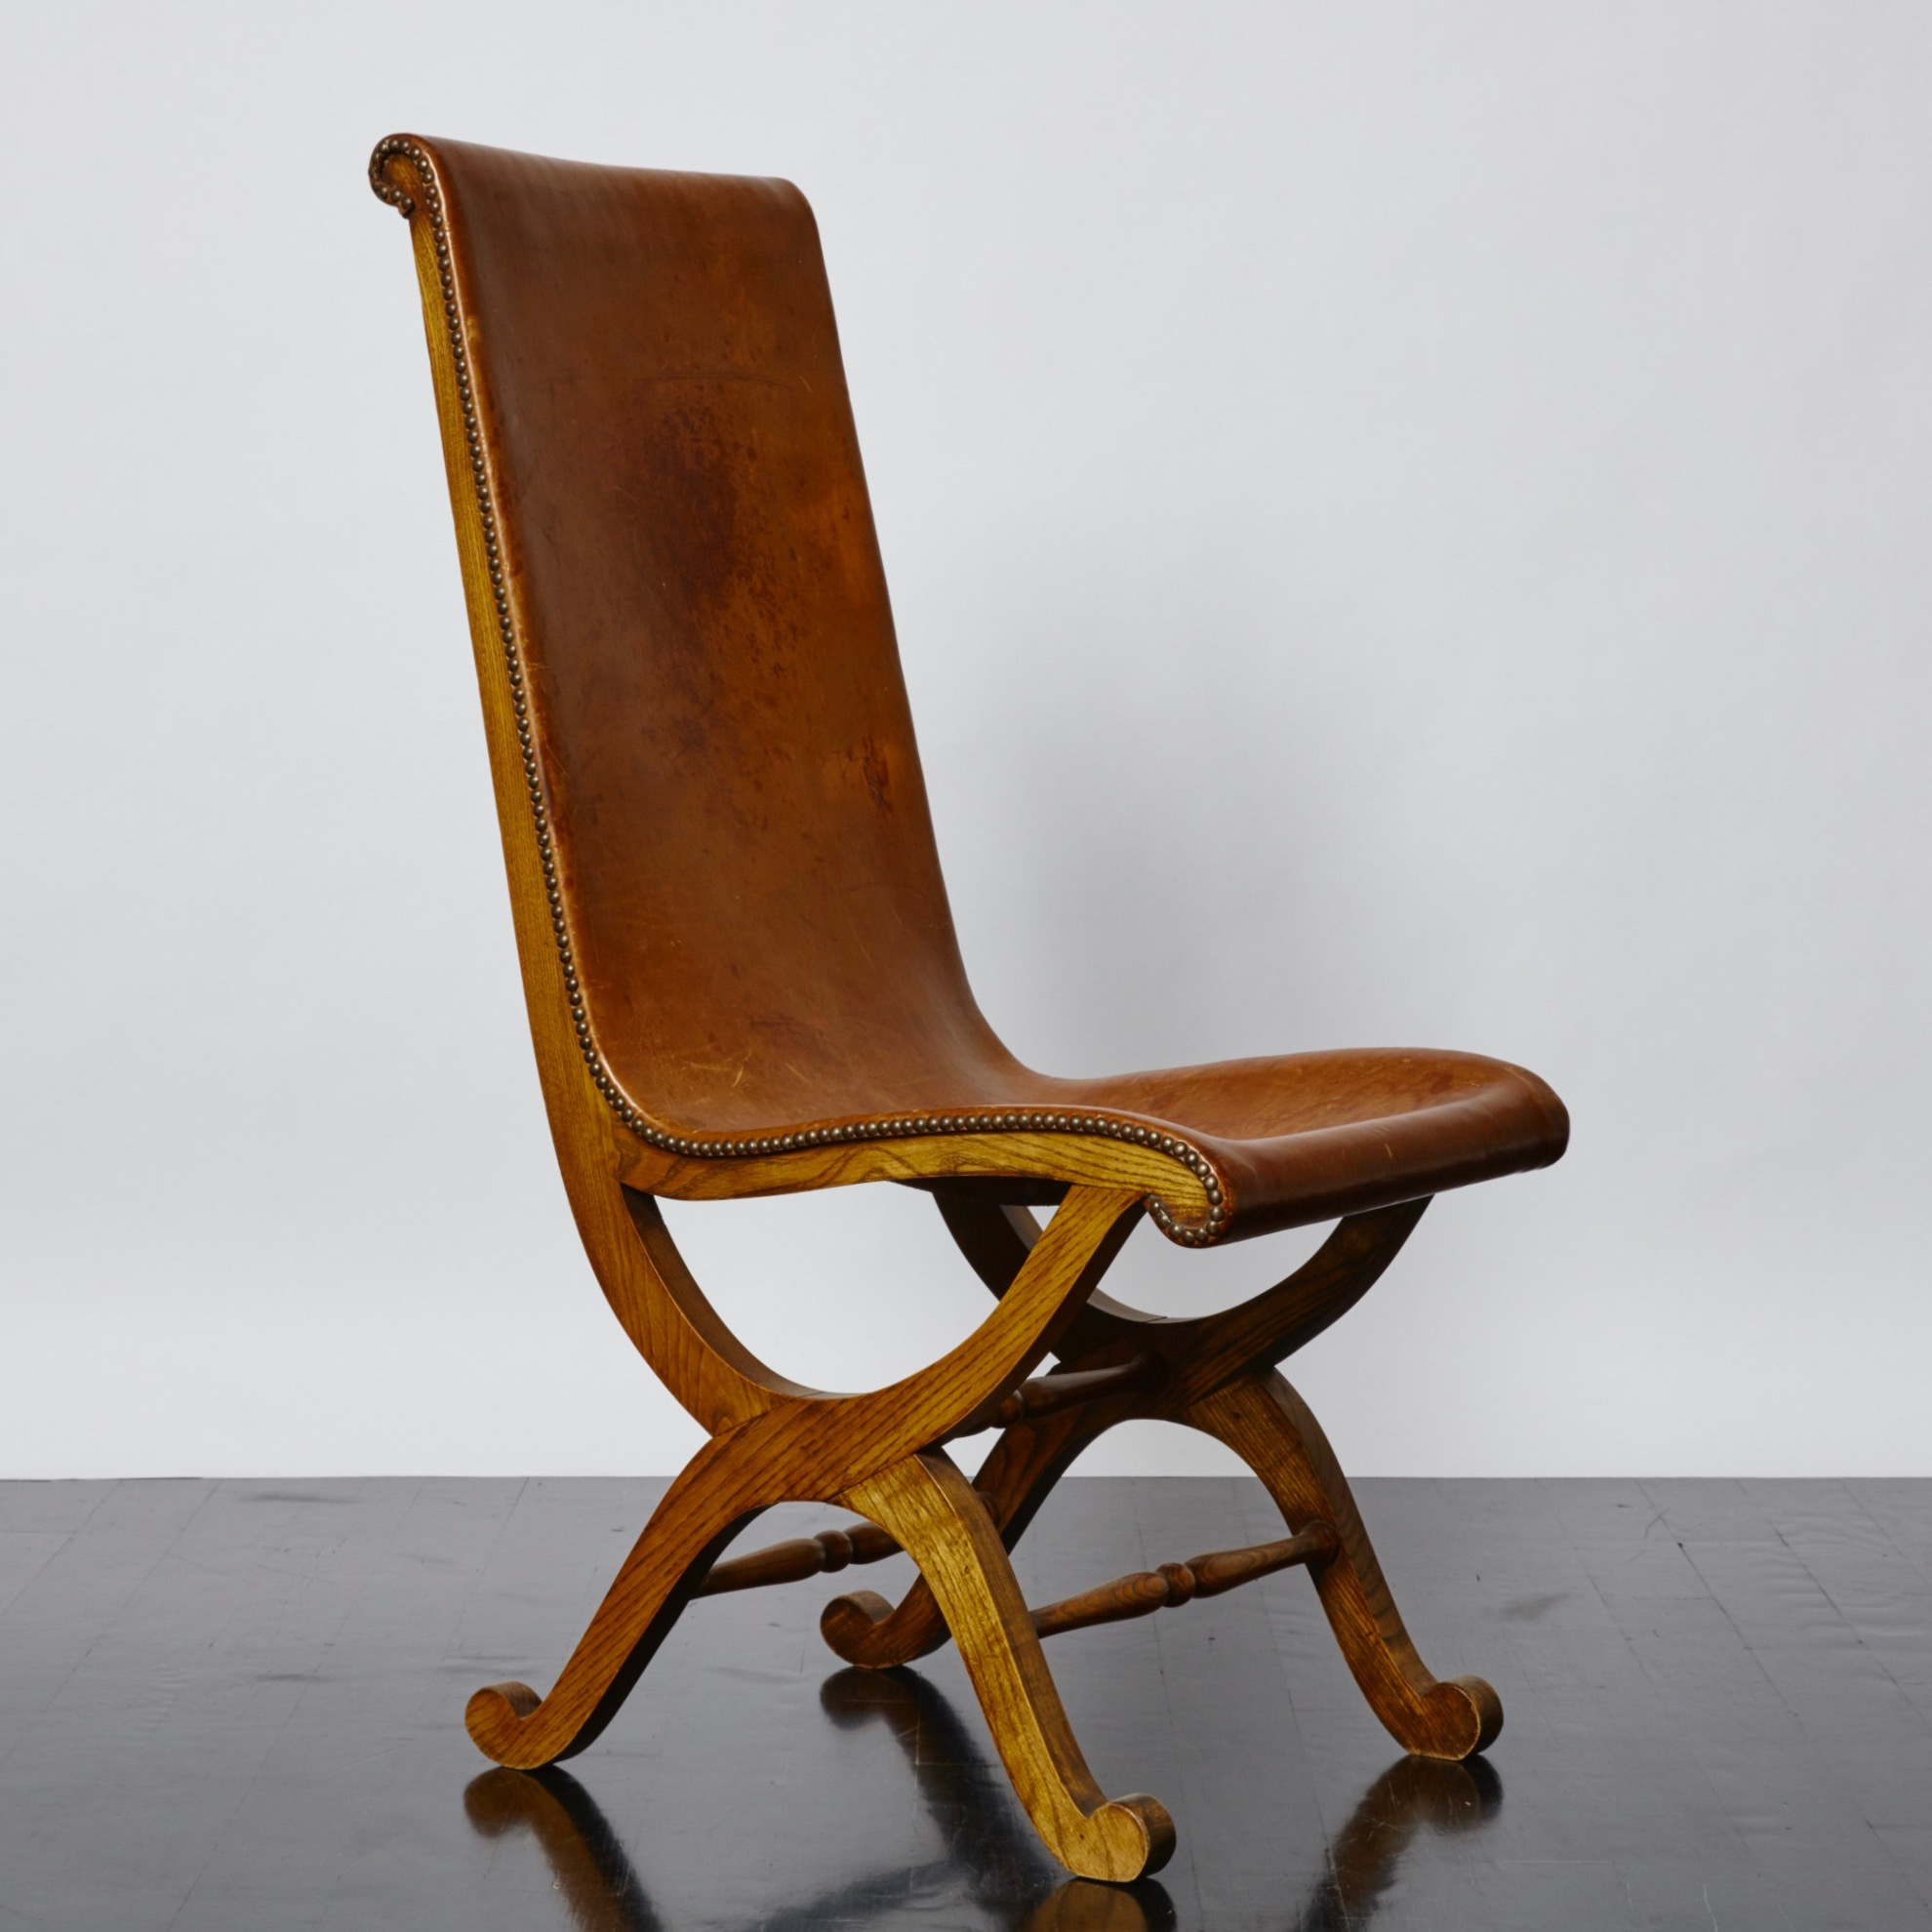 antony_todd_chair_26.jpg